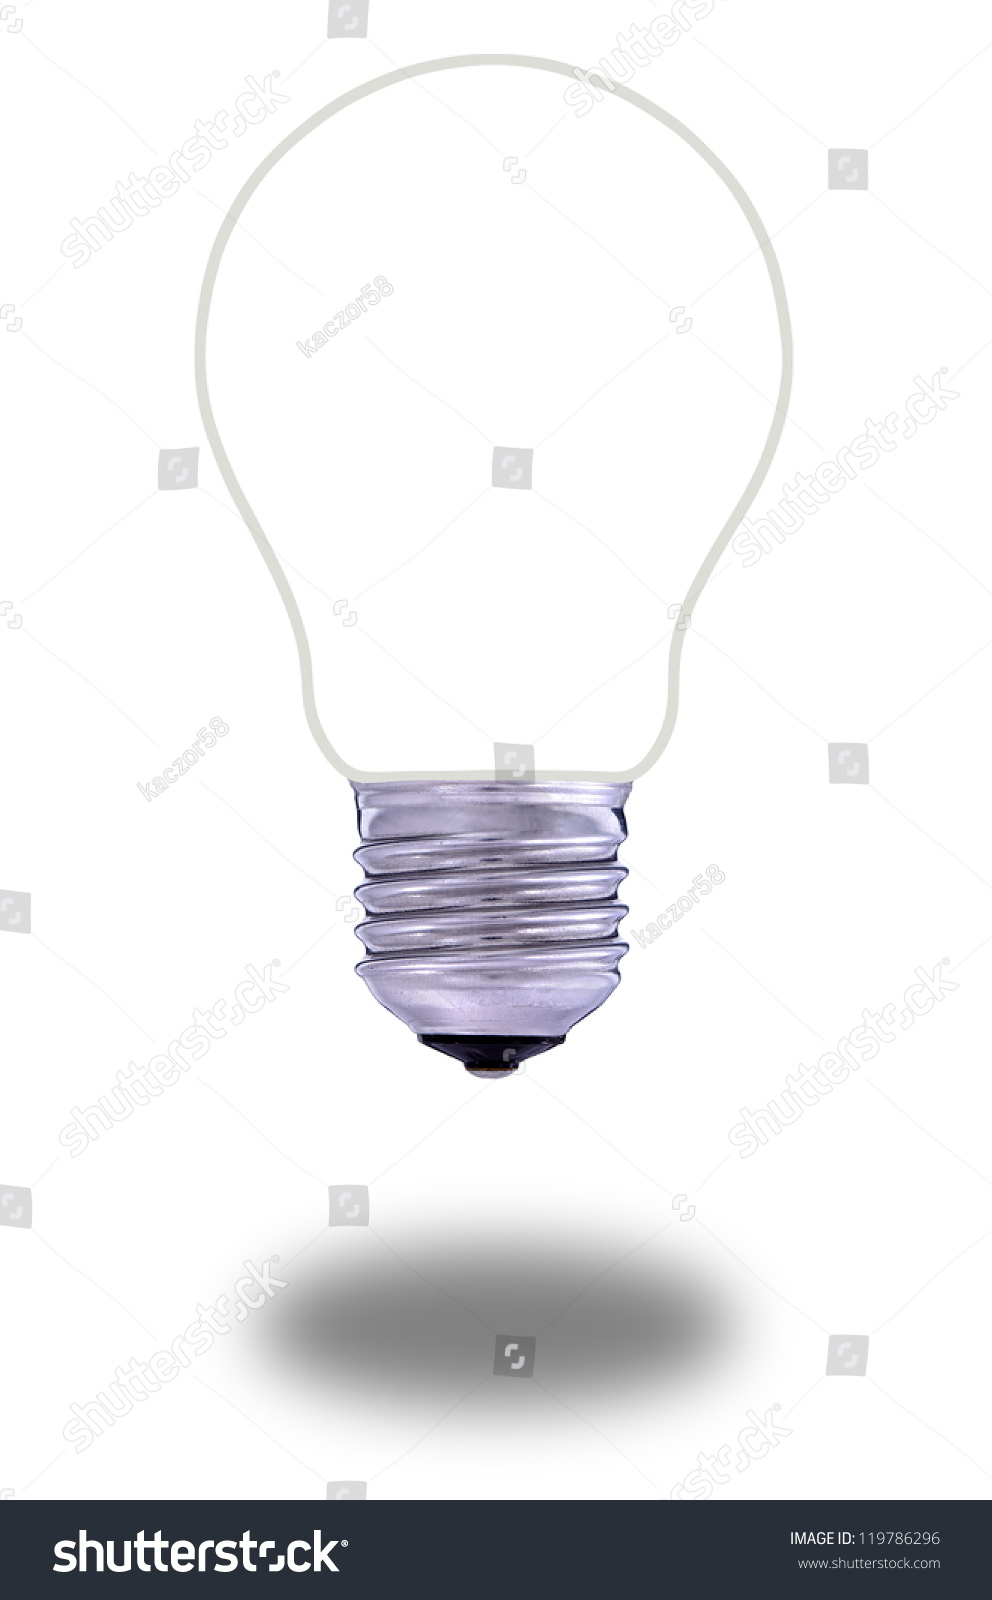 Traditional Light Bulb And Renewable Energy Stock Photo 119786296 Shutterstock